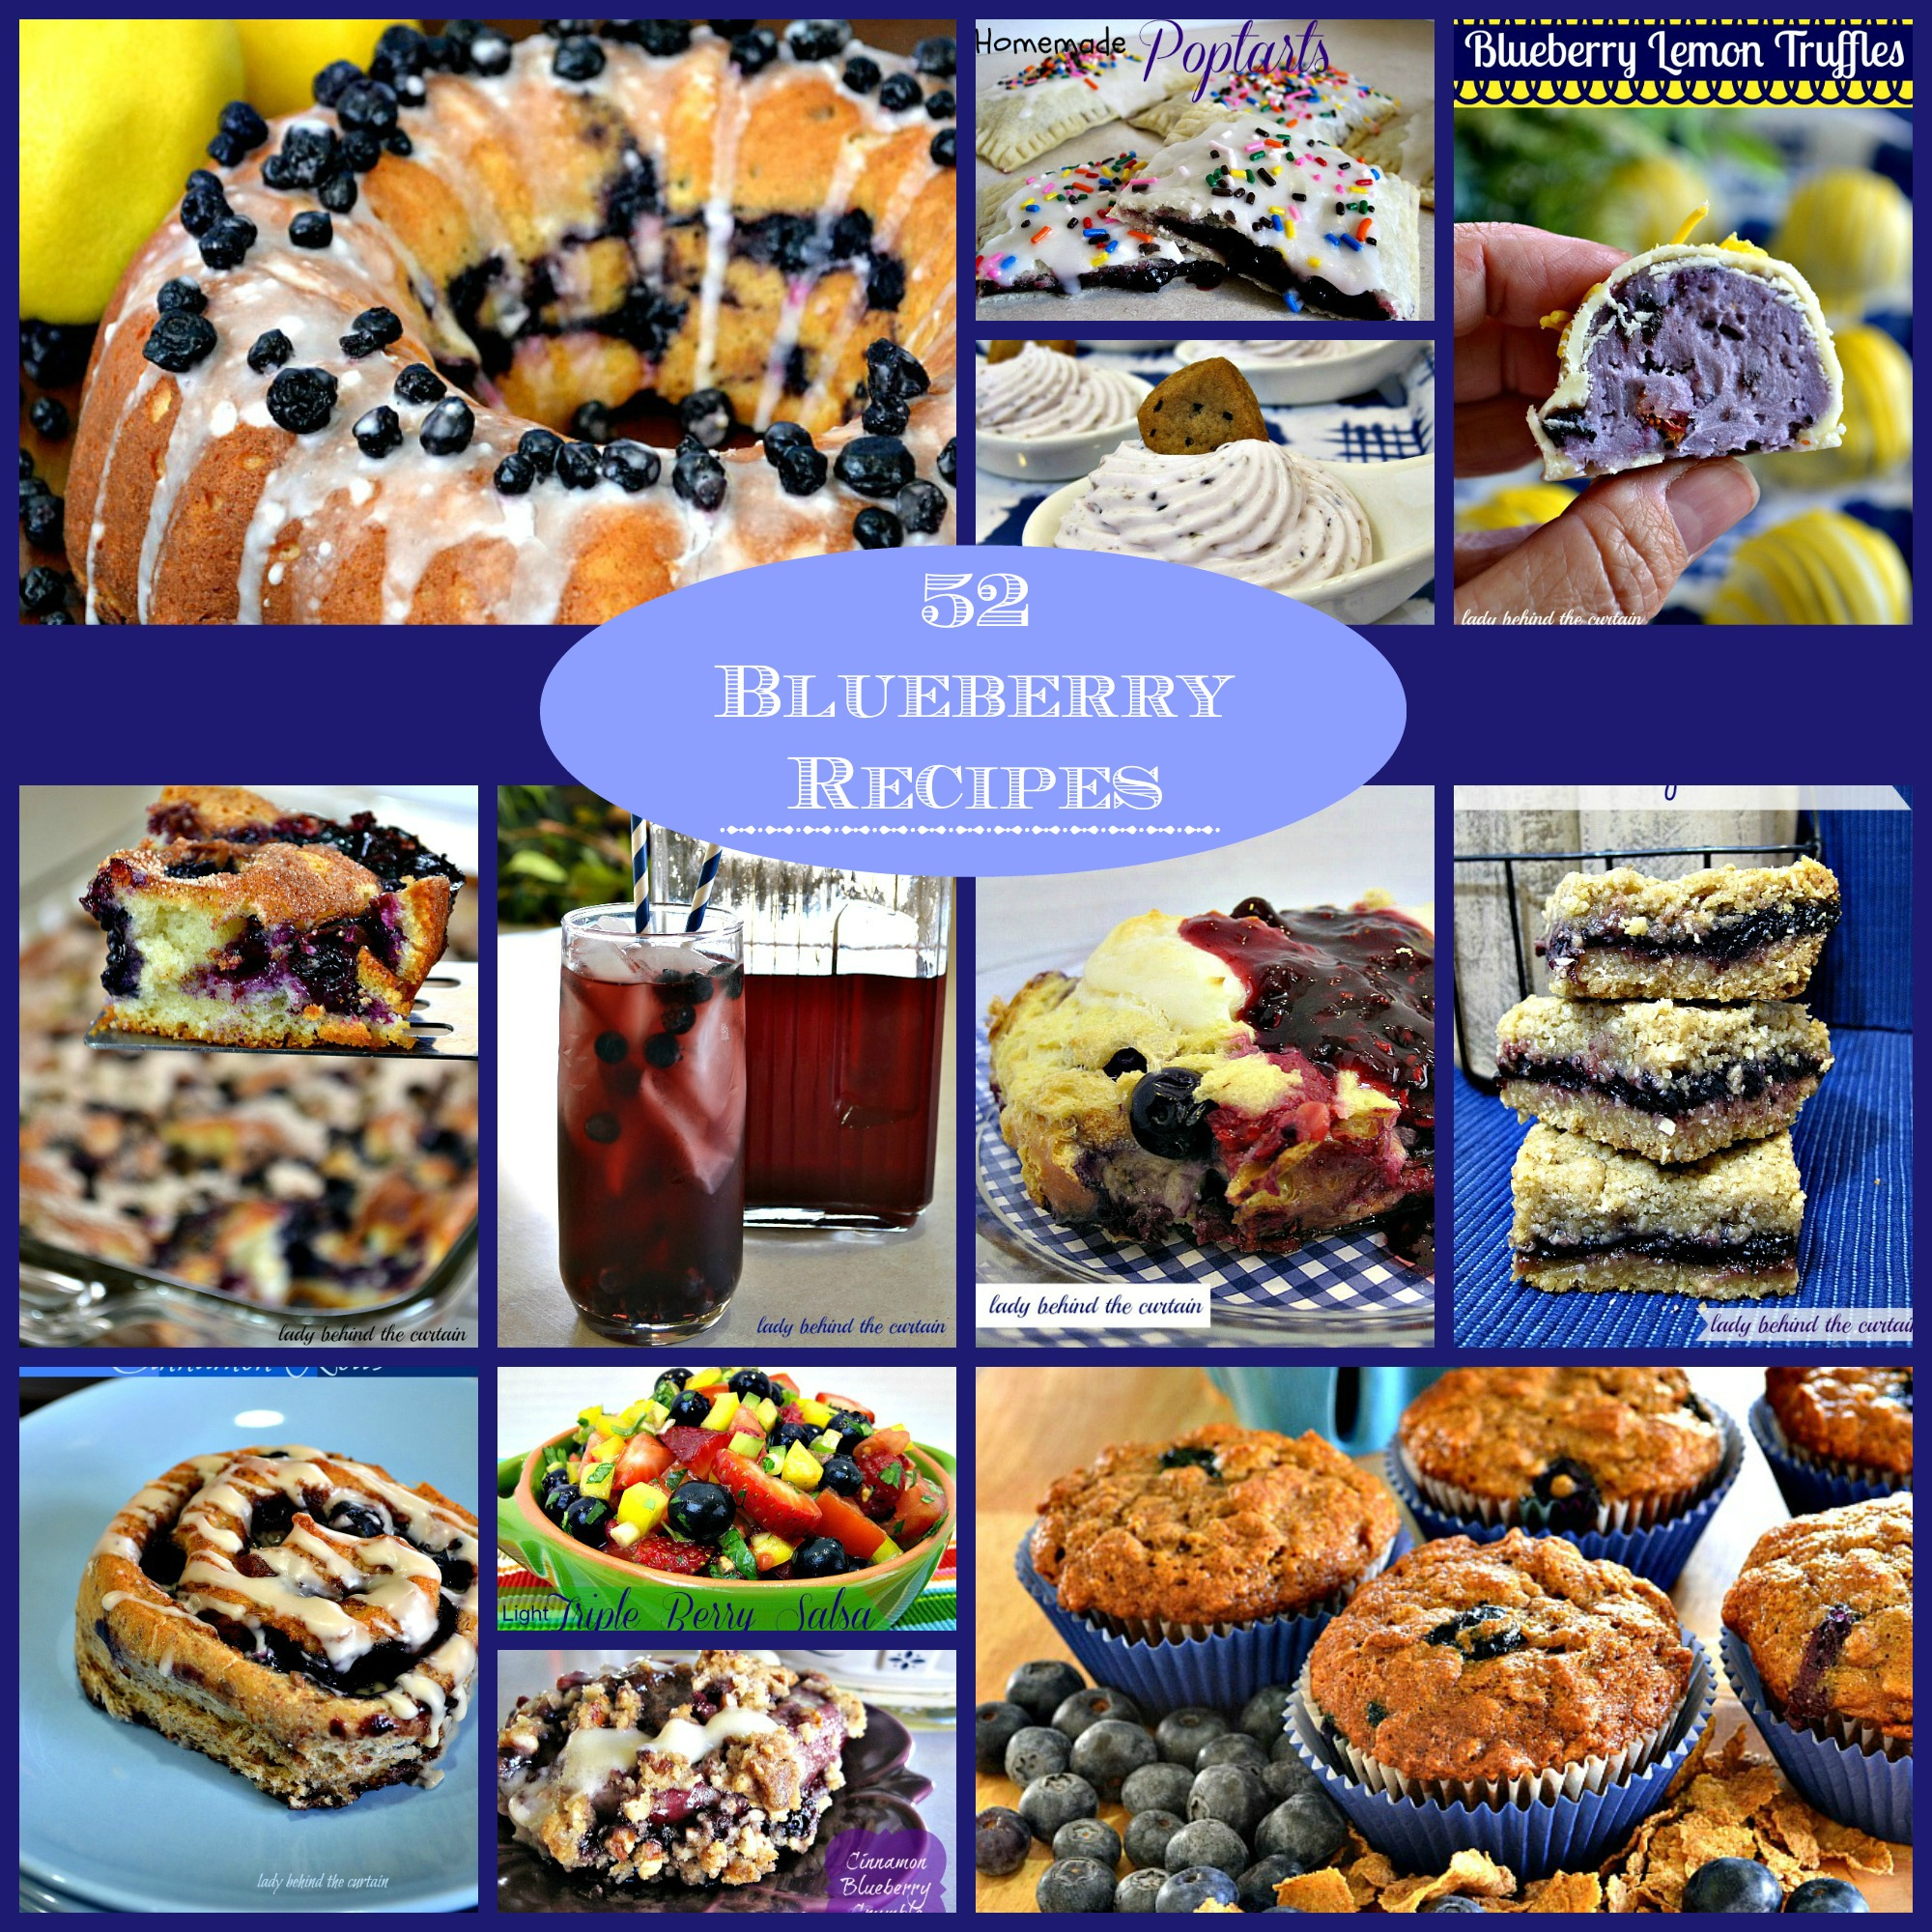 52-Blueberry-Recipes-Lady-Behind-The-Curtain